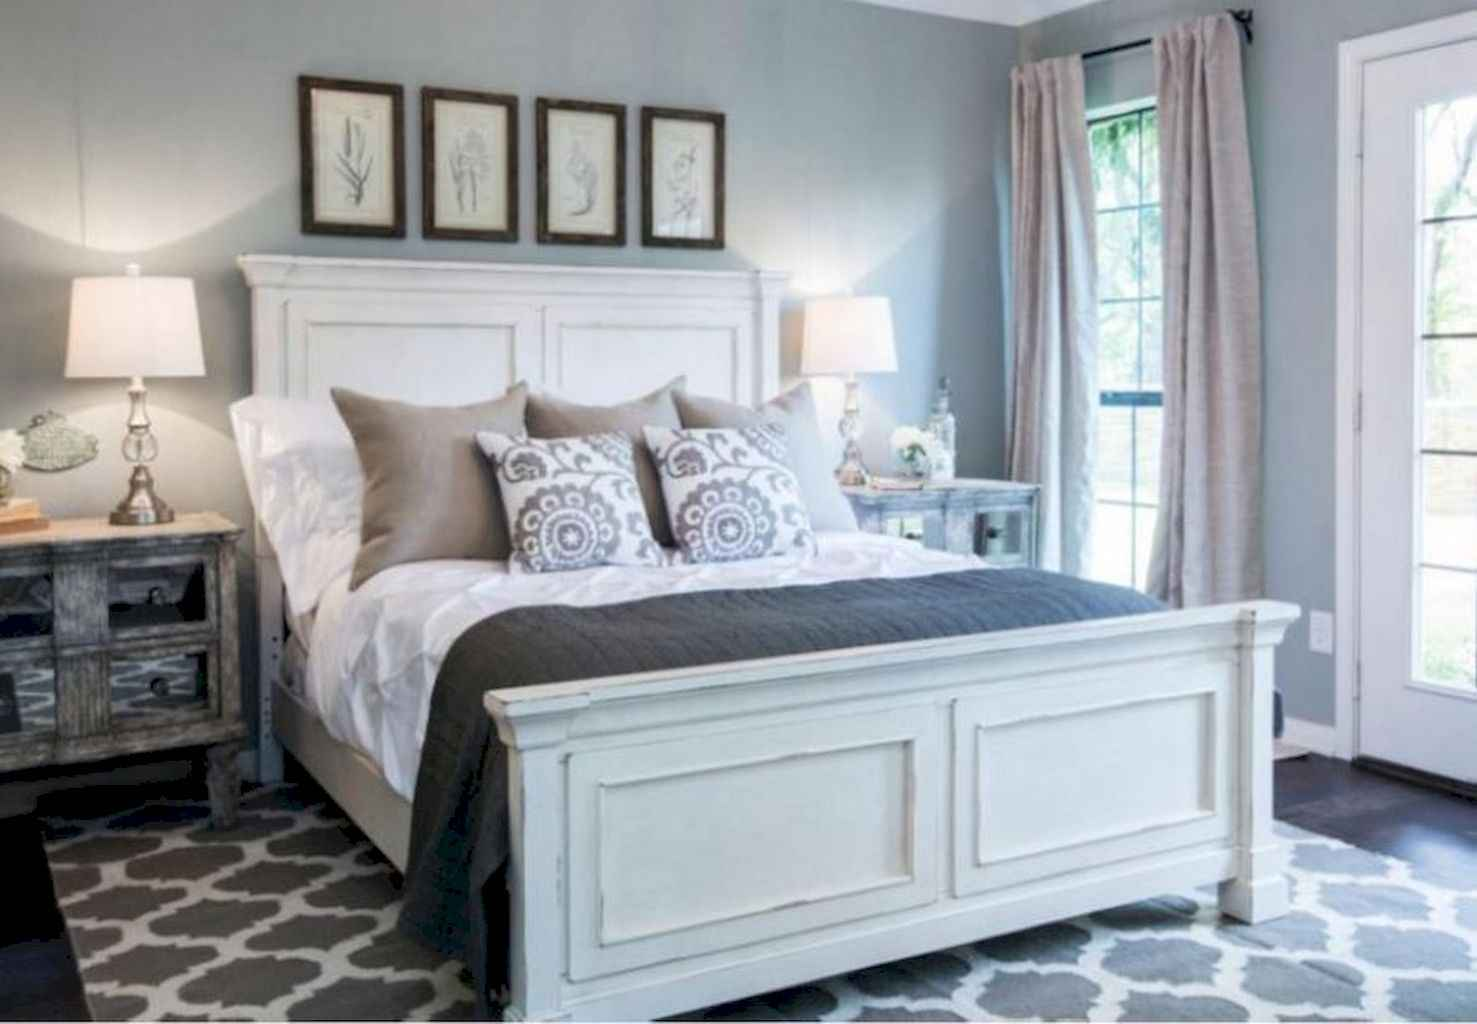 Awesome bedroom decoration ideas (56)